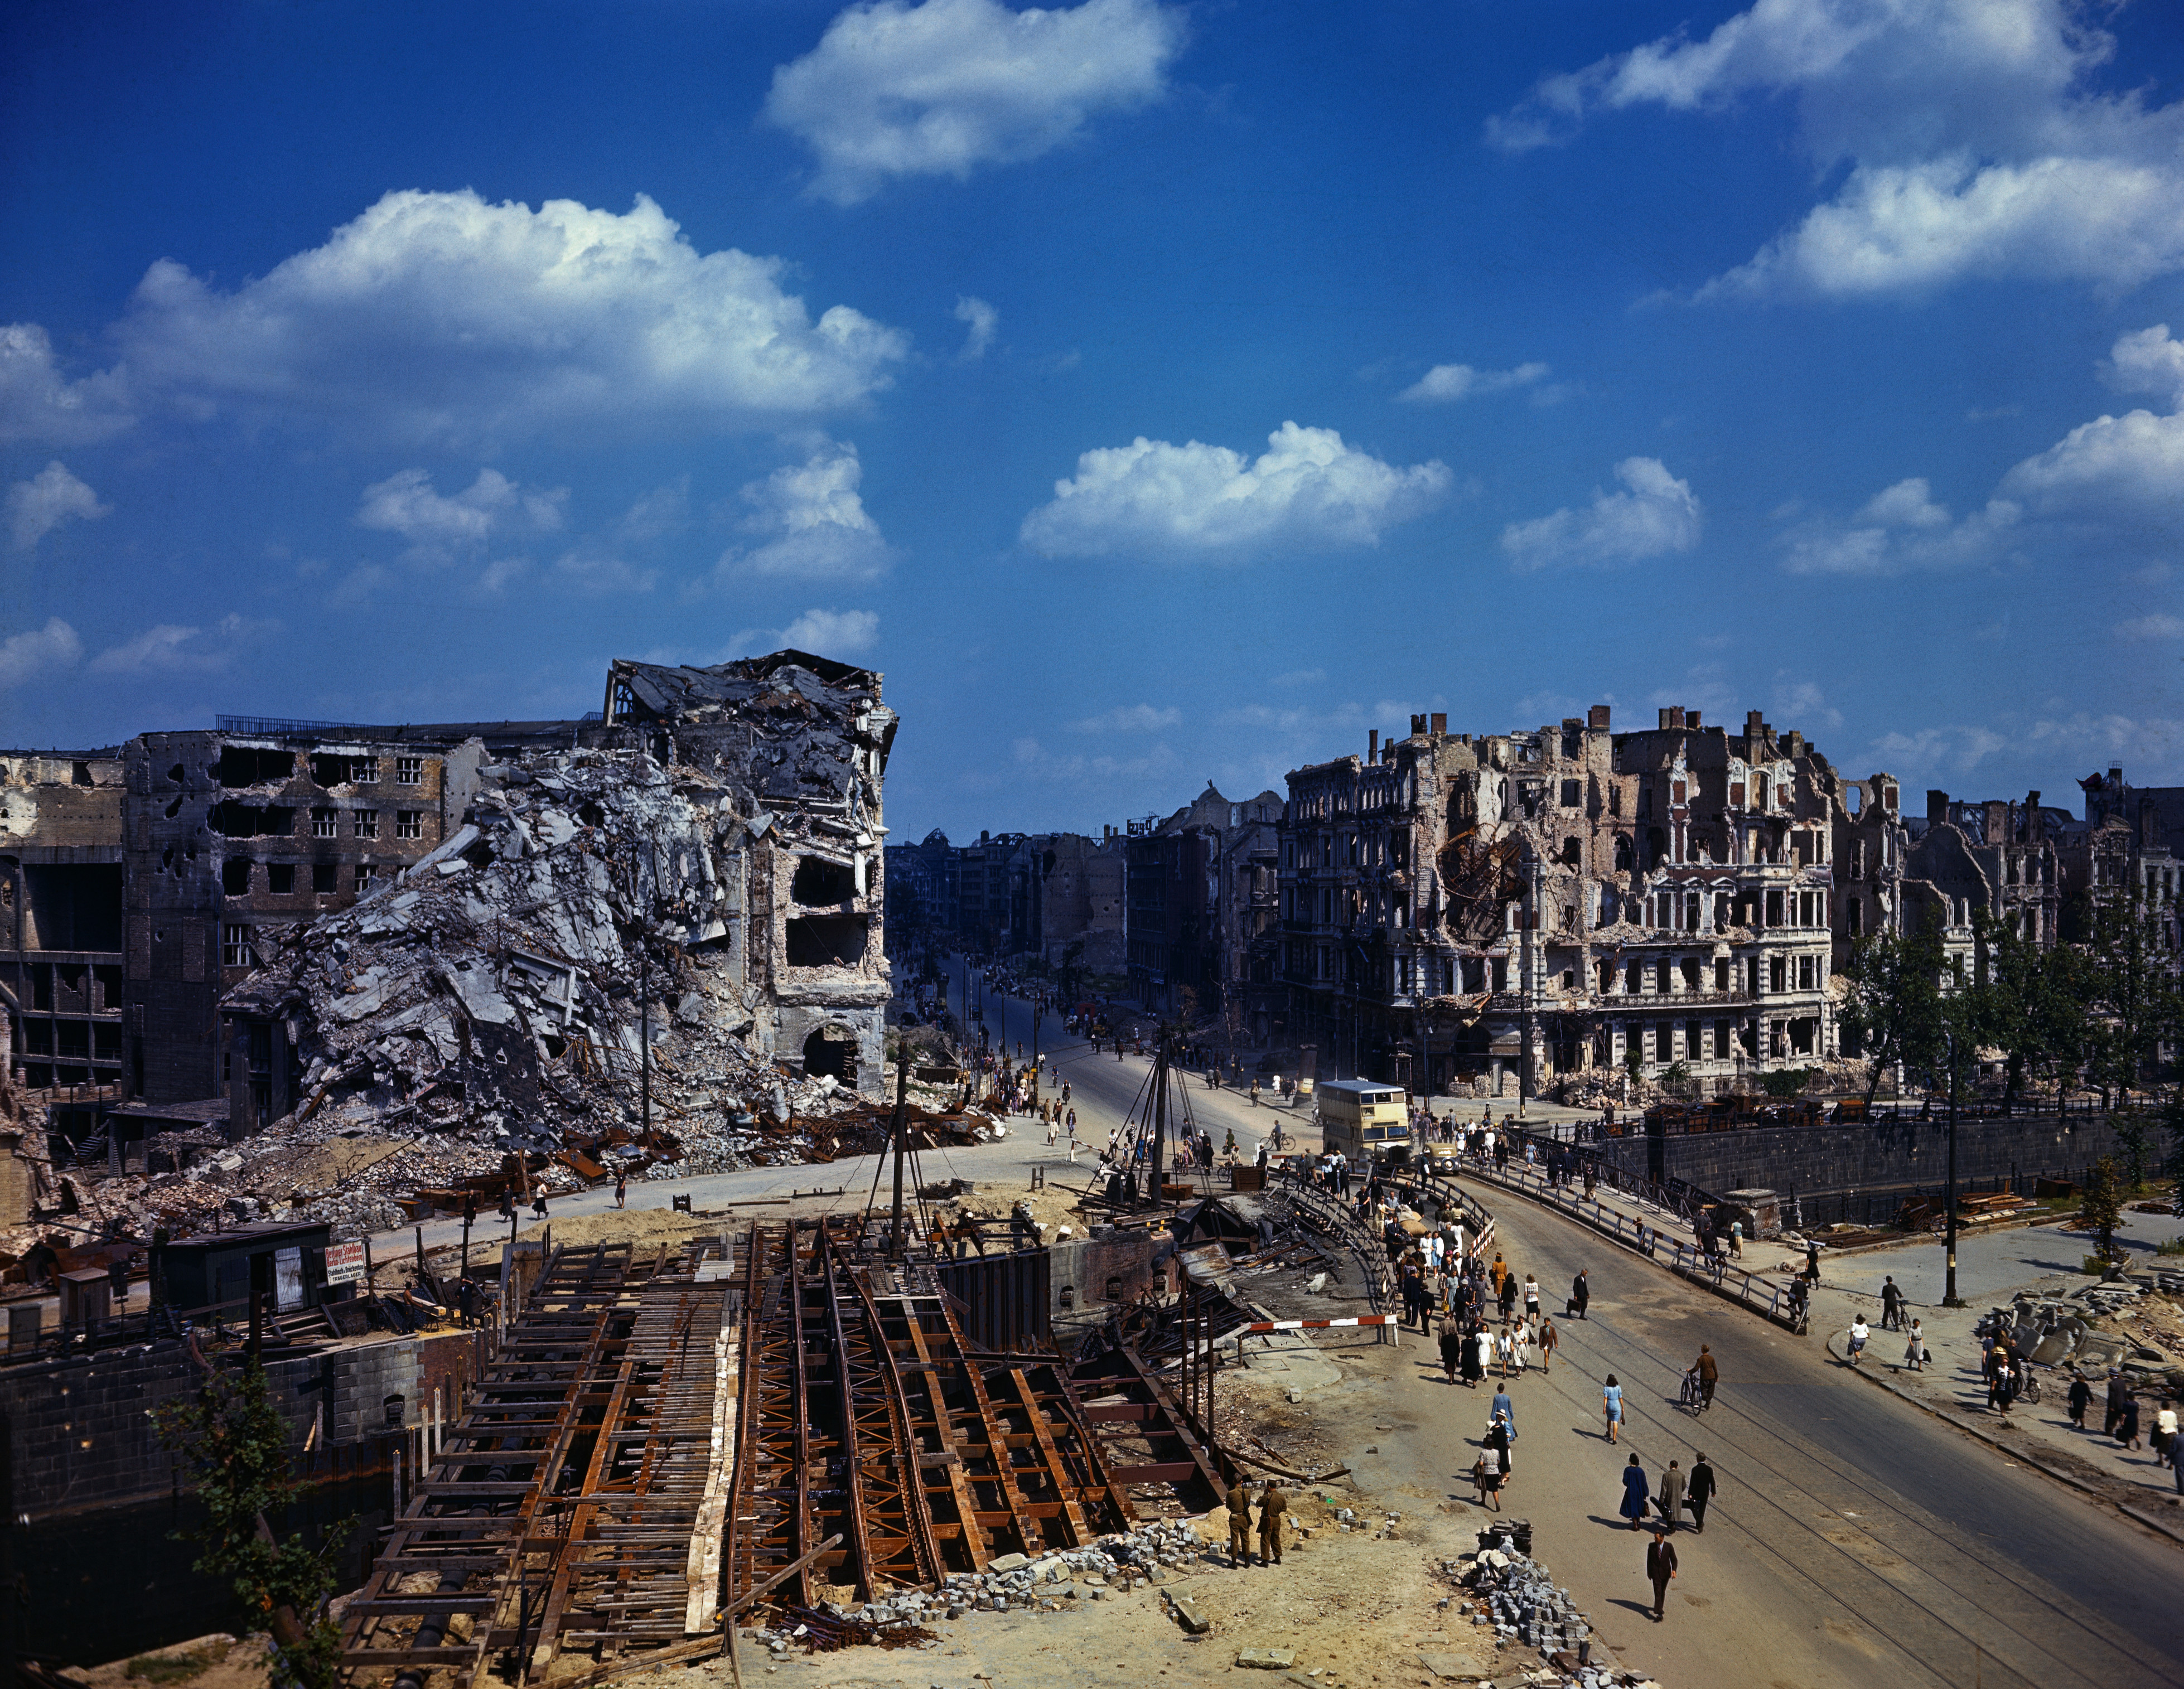 essays world war two Free essay: in 1940 italy declared war on france and britain, the first air raids took place, and many countries were invaded and alliances were formed the.